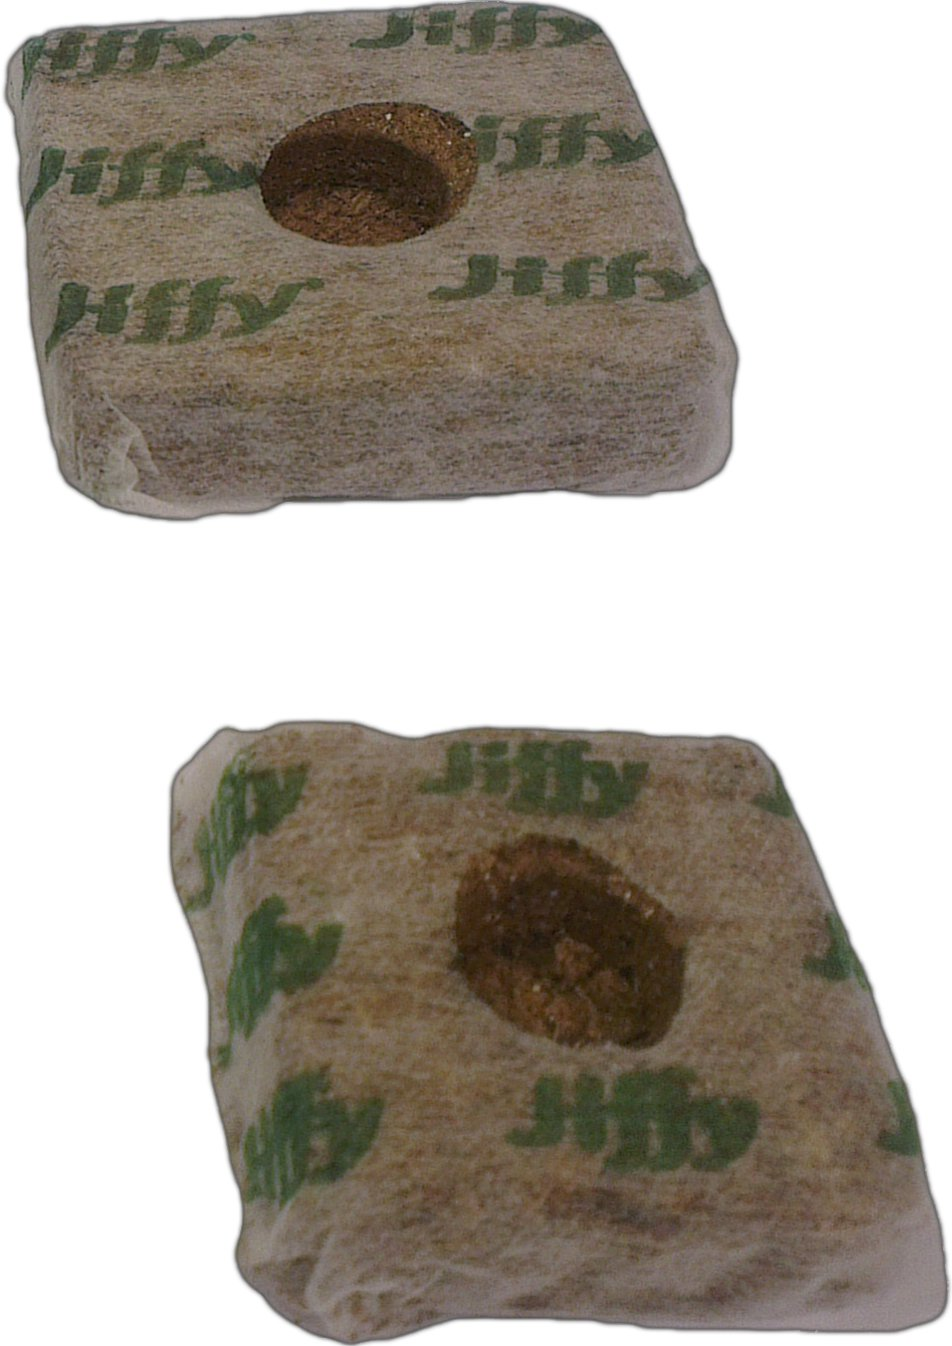 Elixir Gardens ® Jiffy Grow Blocks | 50mm x 50mm | x 10